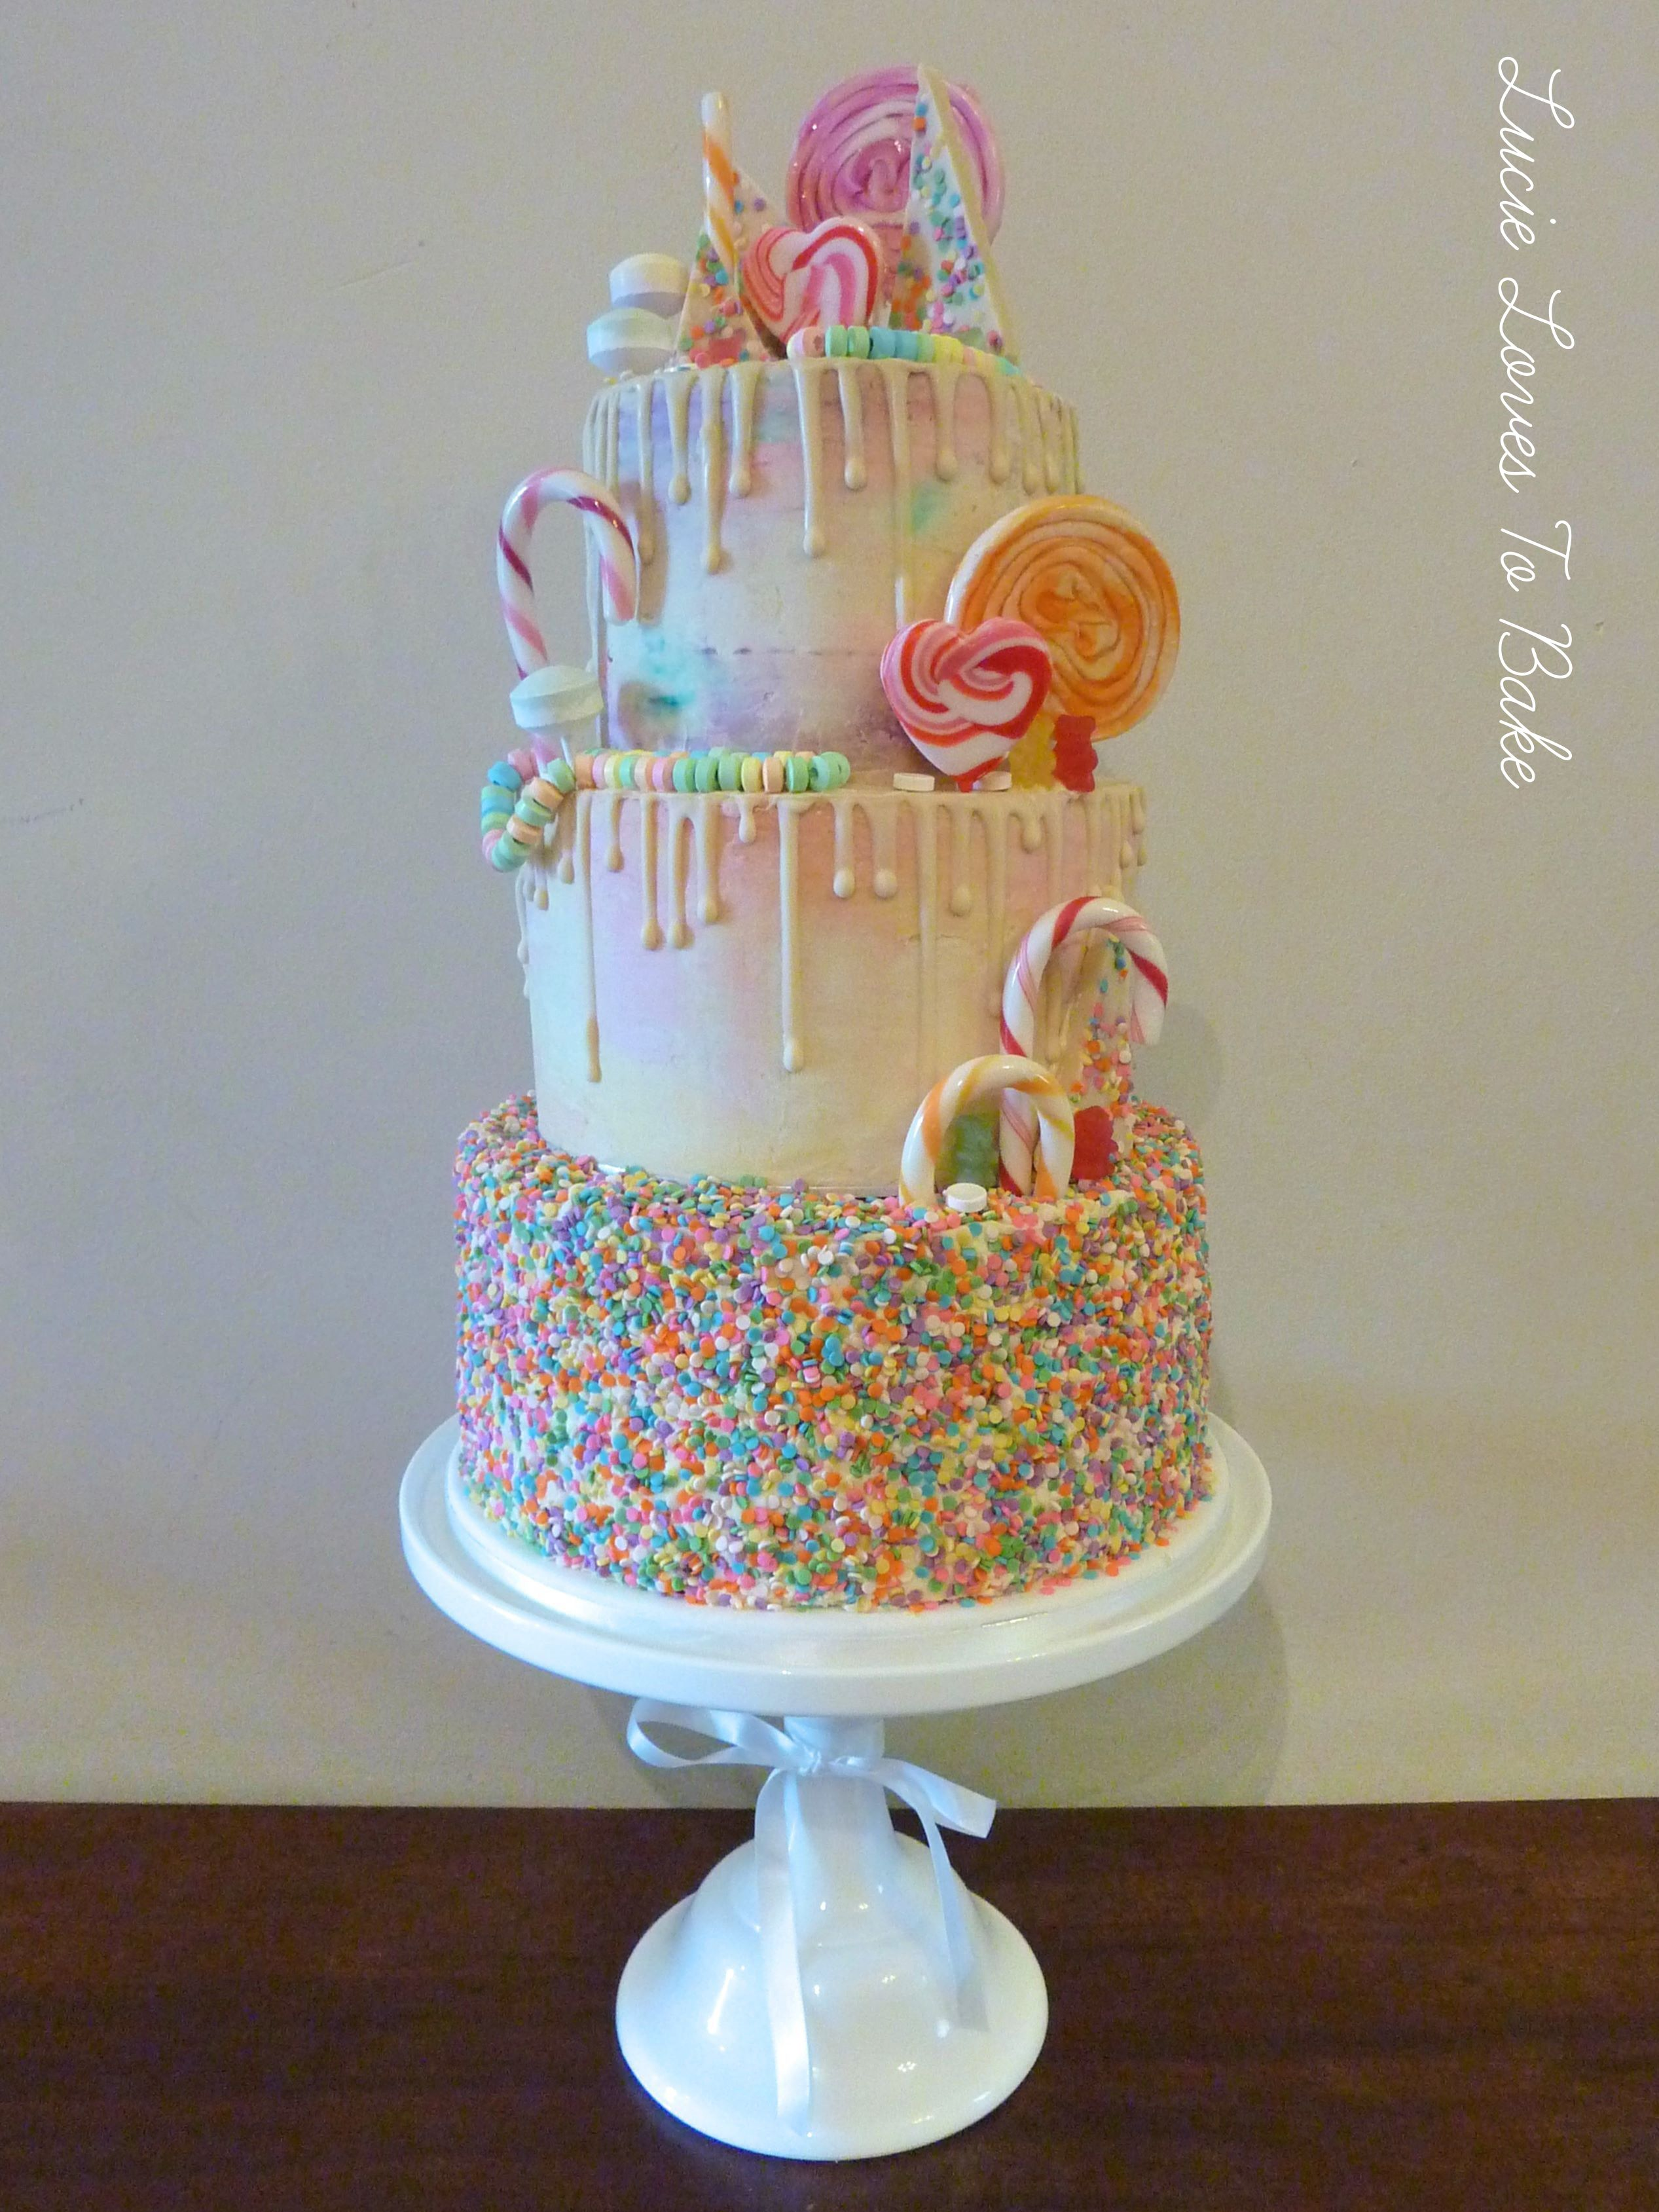 Vegan Sprinkle Rainbow Drip Cake Decorated With Sweets Lollipops